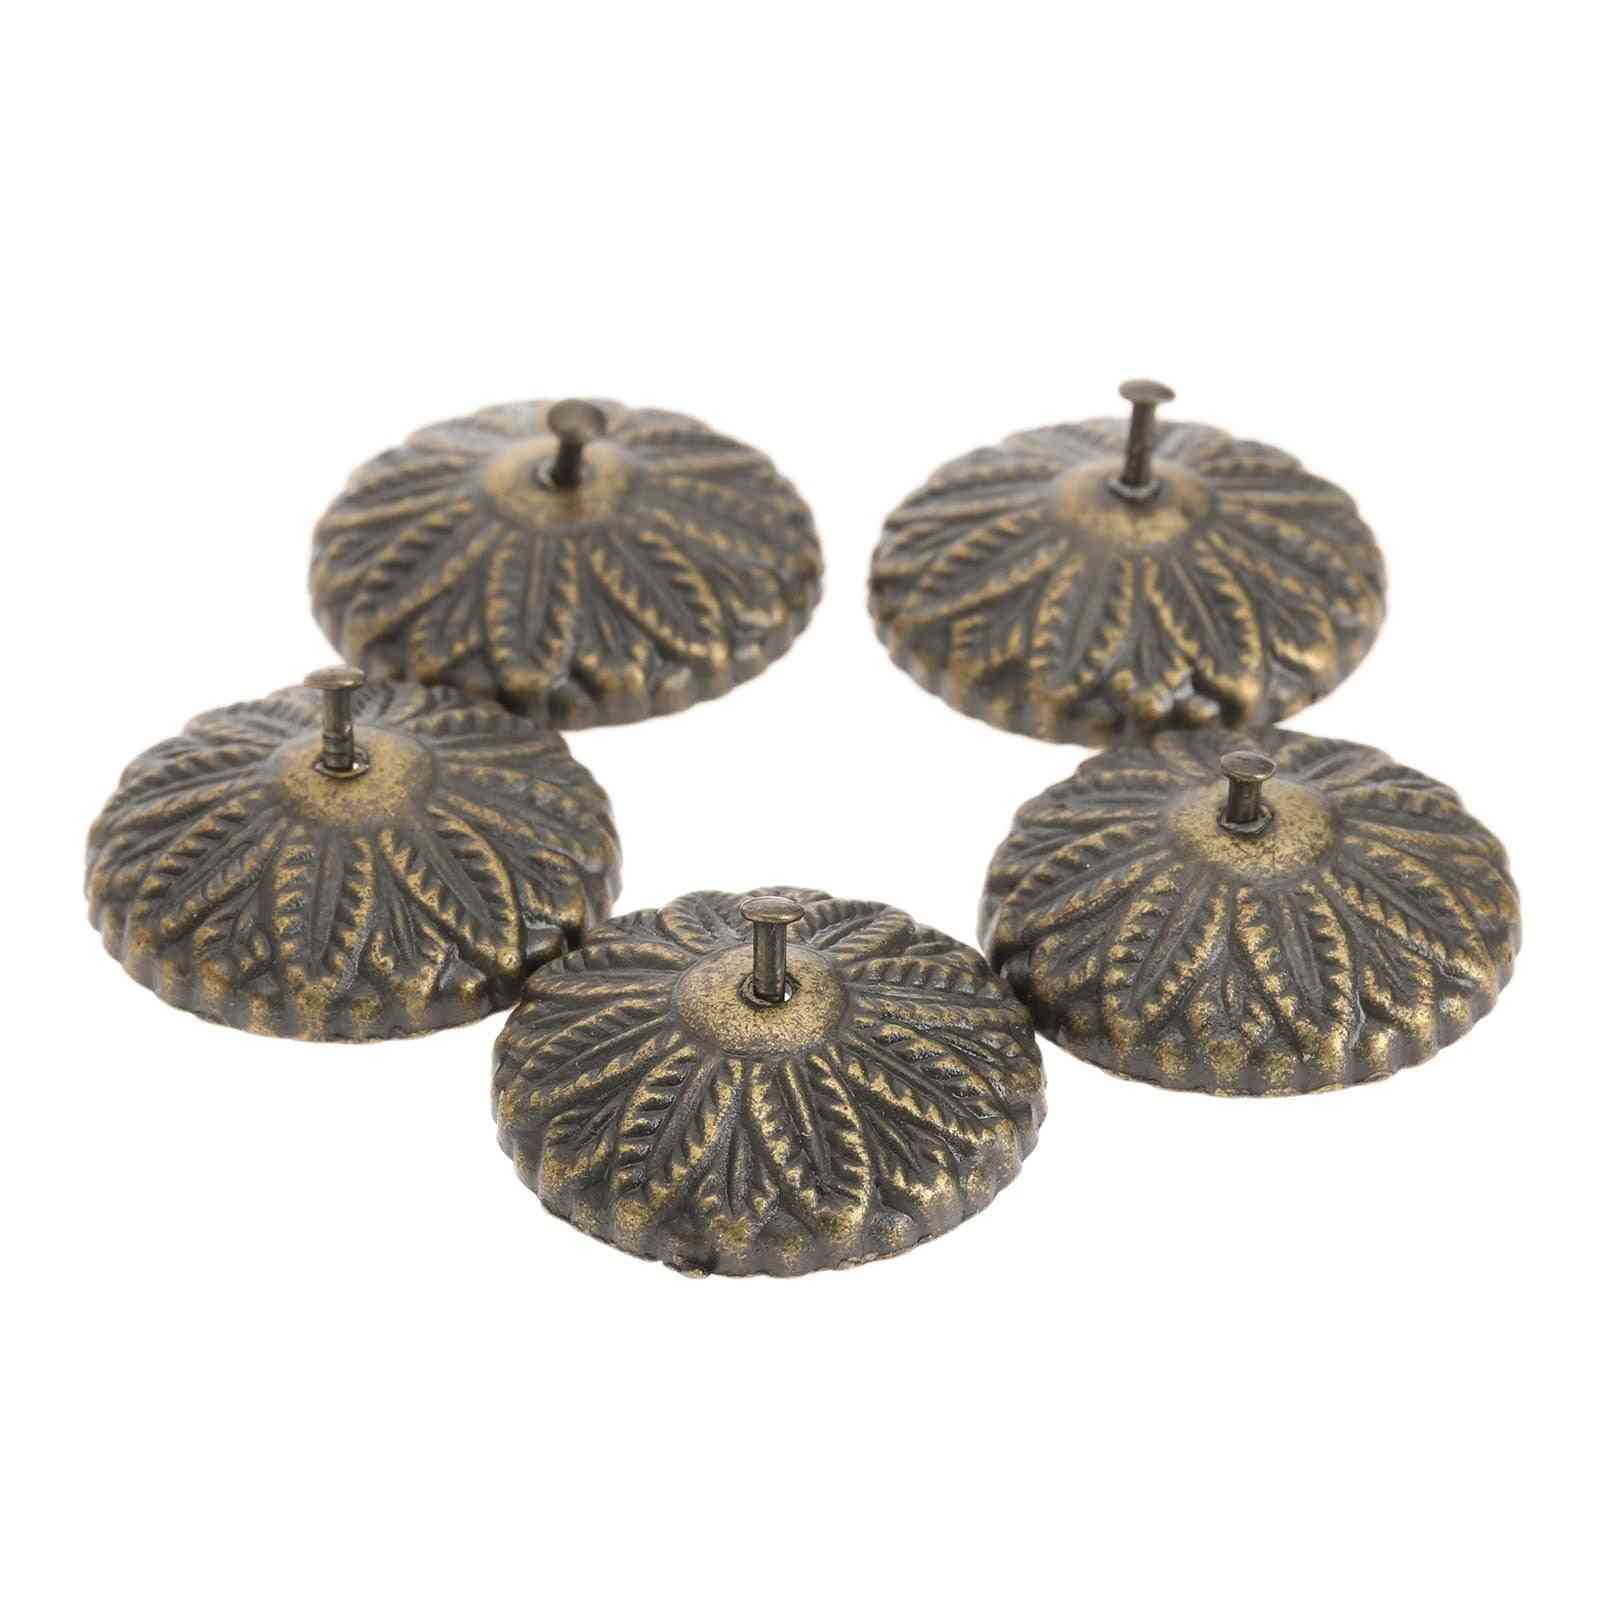 Antique Bronze Carved Drum Nails, Decorative Furniture, Upholstery Nails Tack Studs